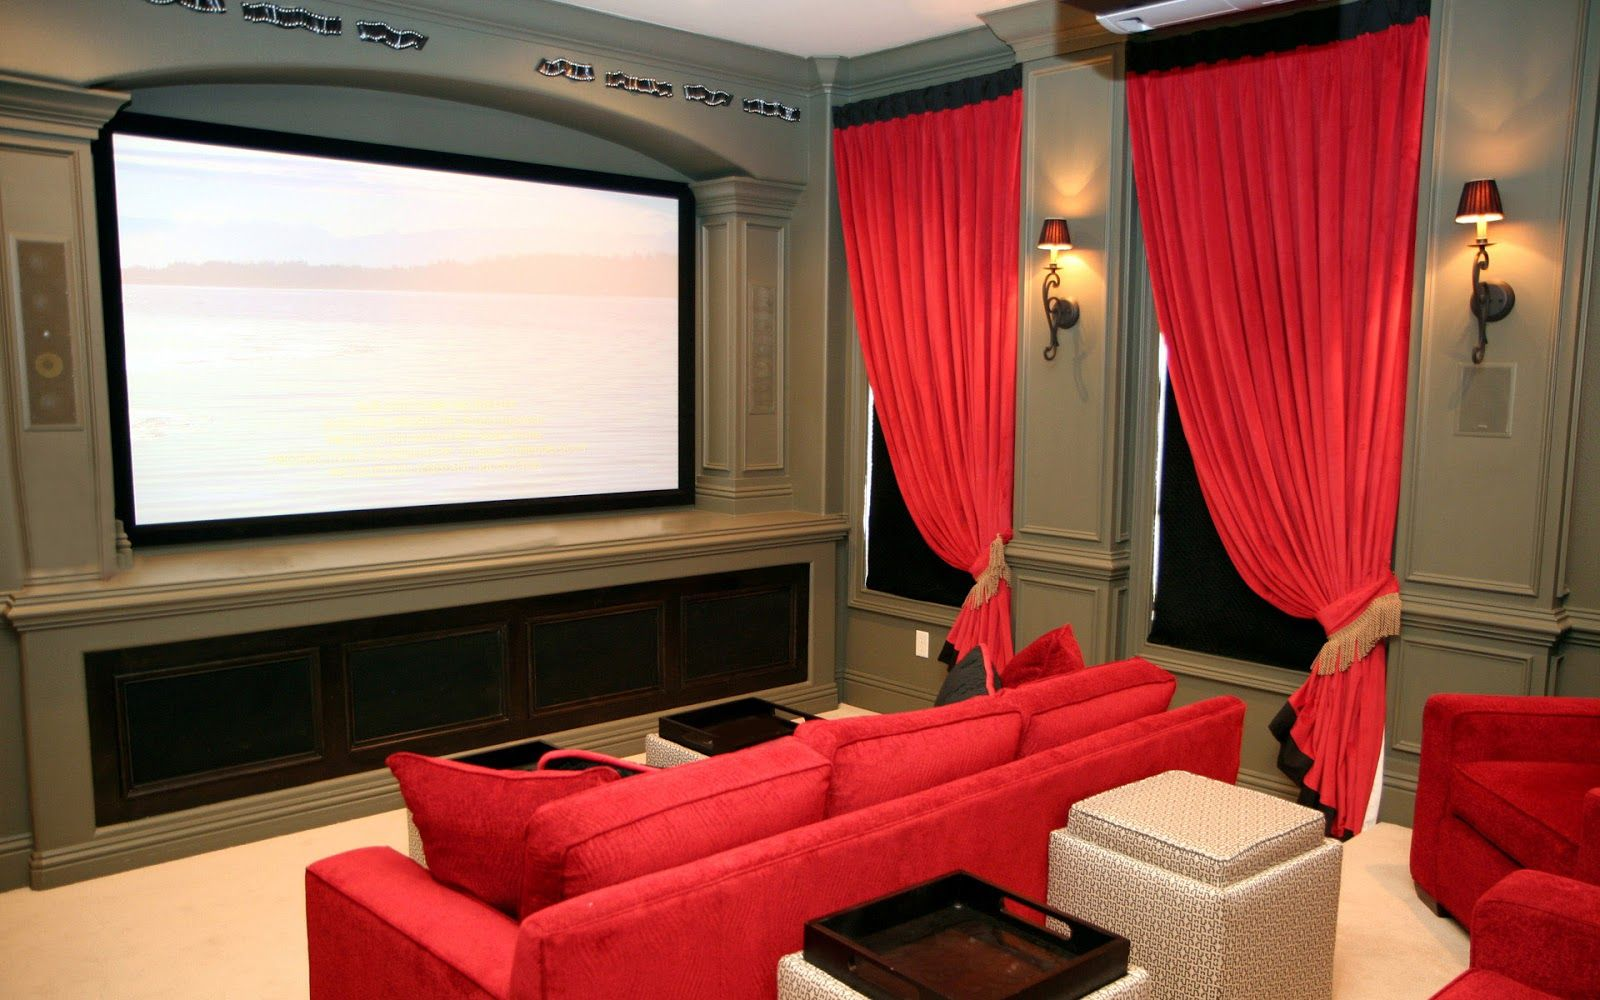 images about movie theme on pinterest movie rooms movie theme red and black home theater - Home Cinema Decor